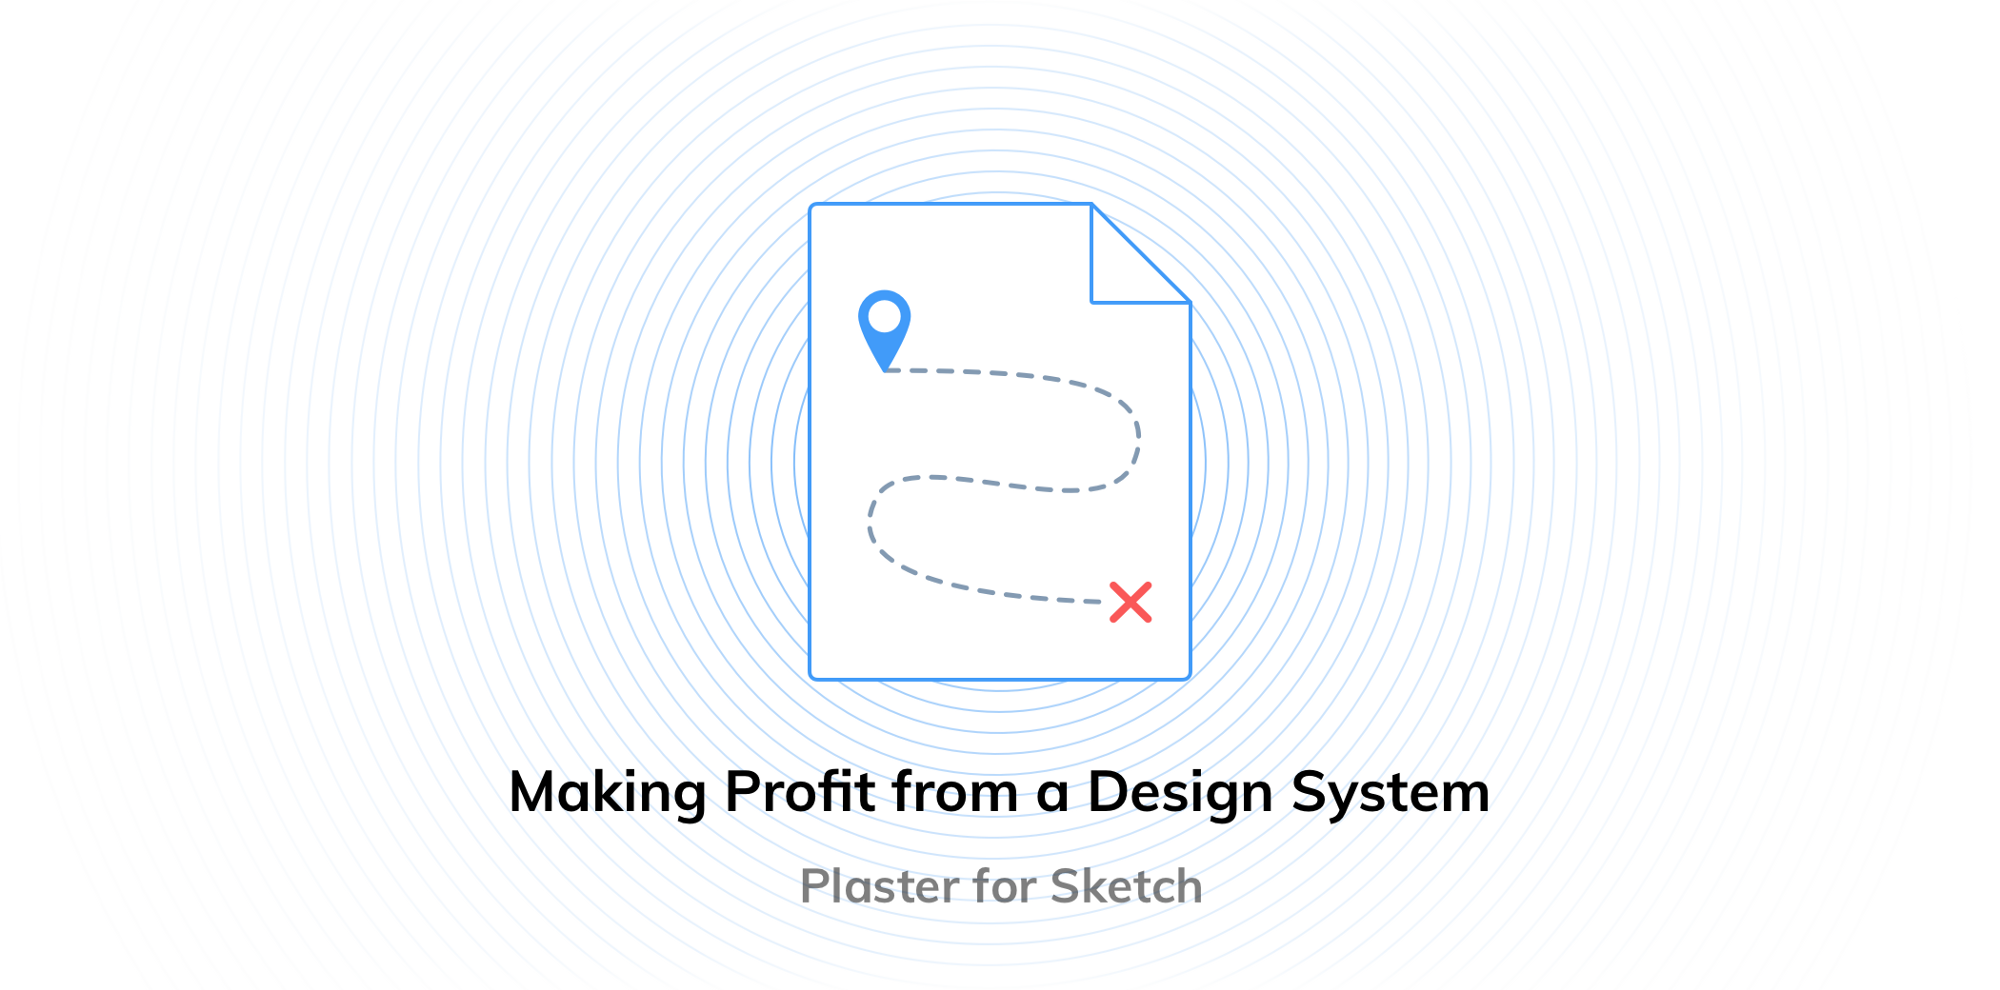 Making profit from a design system design sketch medium briefly describe the main development stages and showcase sketch hacks that could provide you a significant time saver while creating a decent resource malvernweather Choice Image